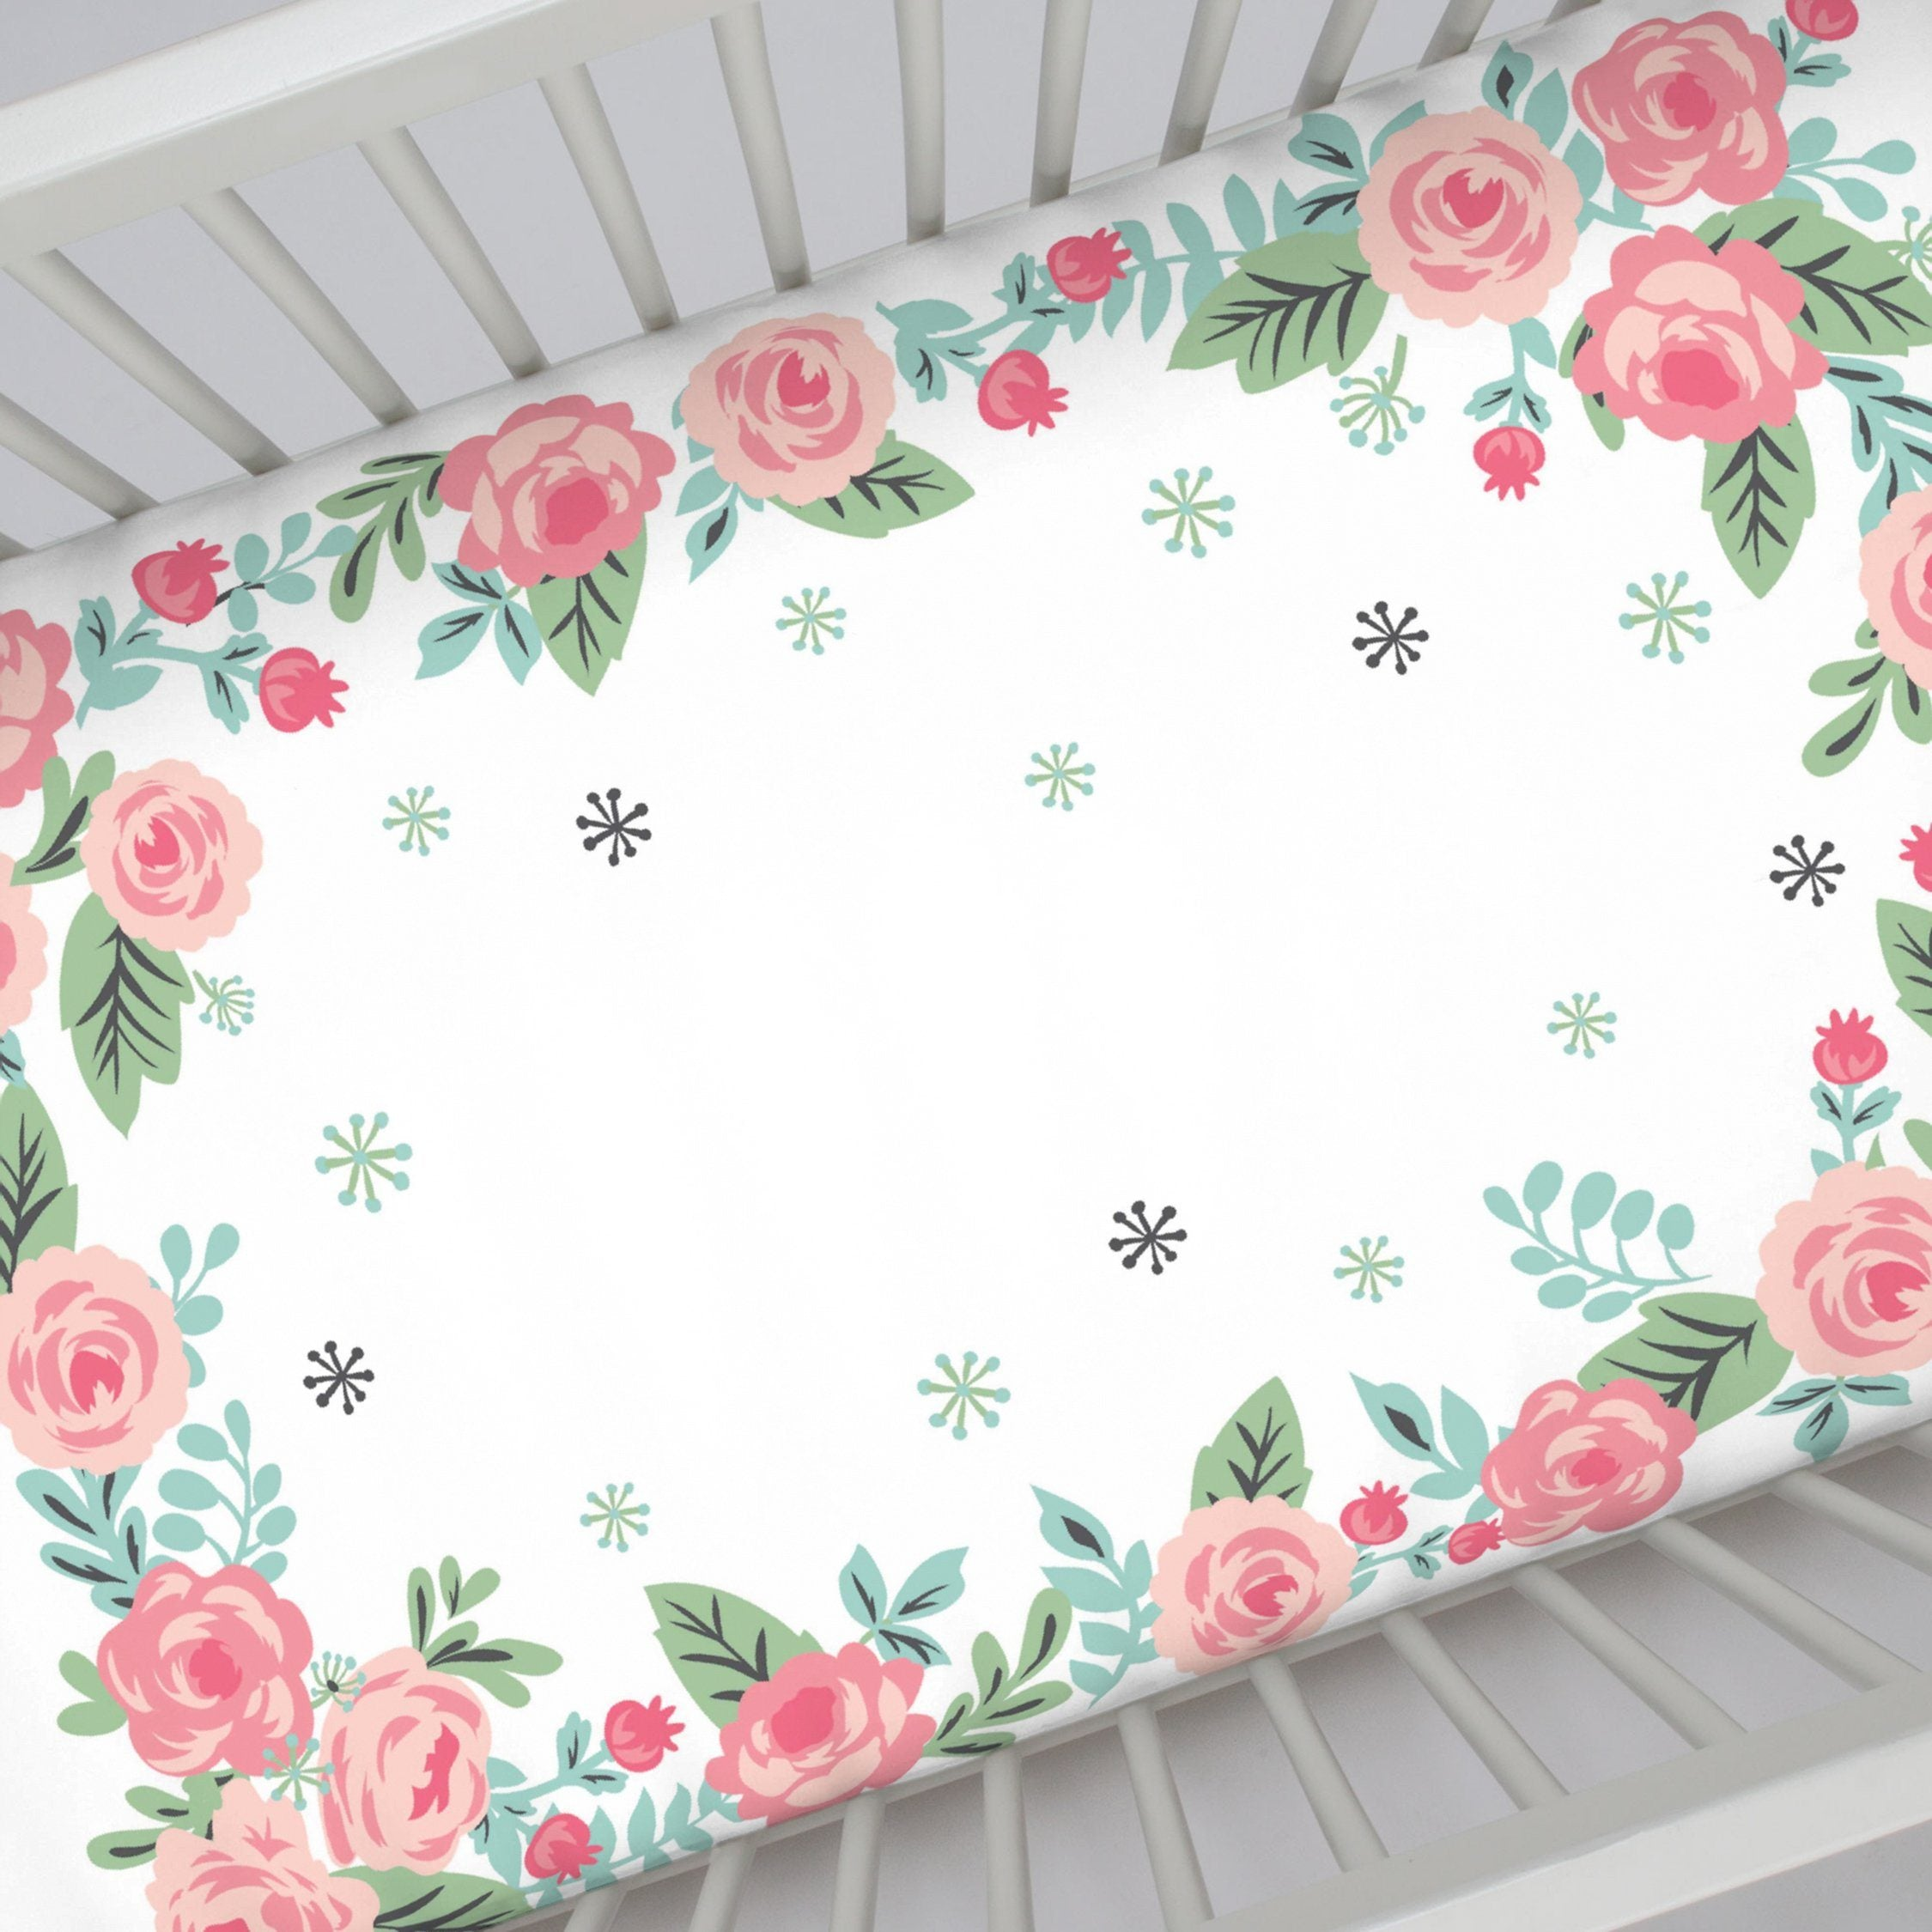 Pink Roses Photo Op Crib Sheet - Project Nursery